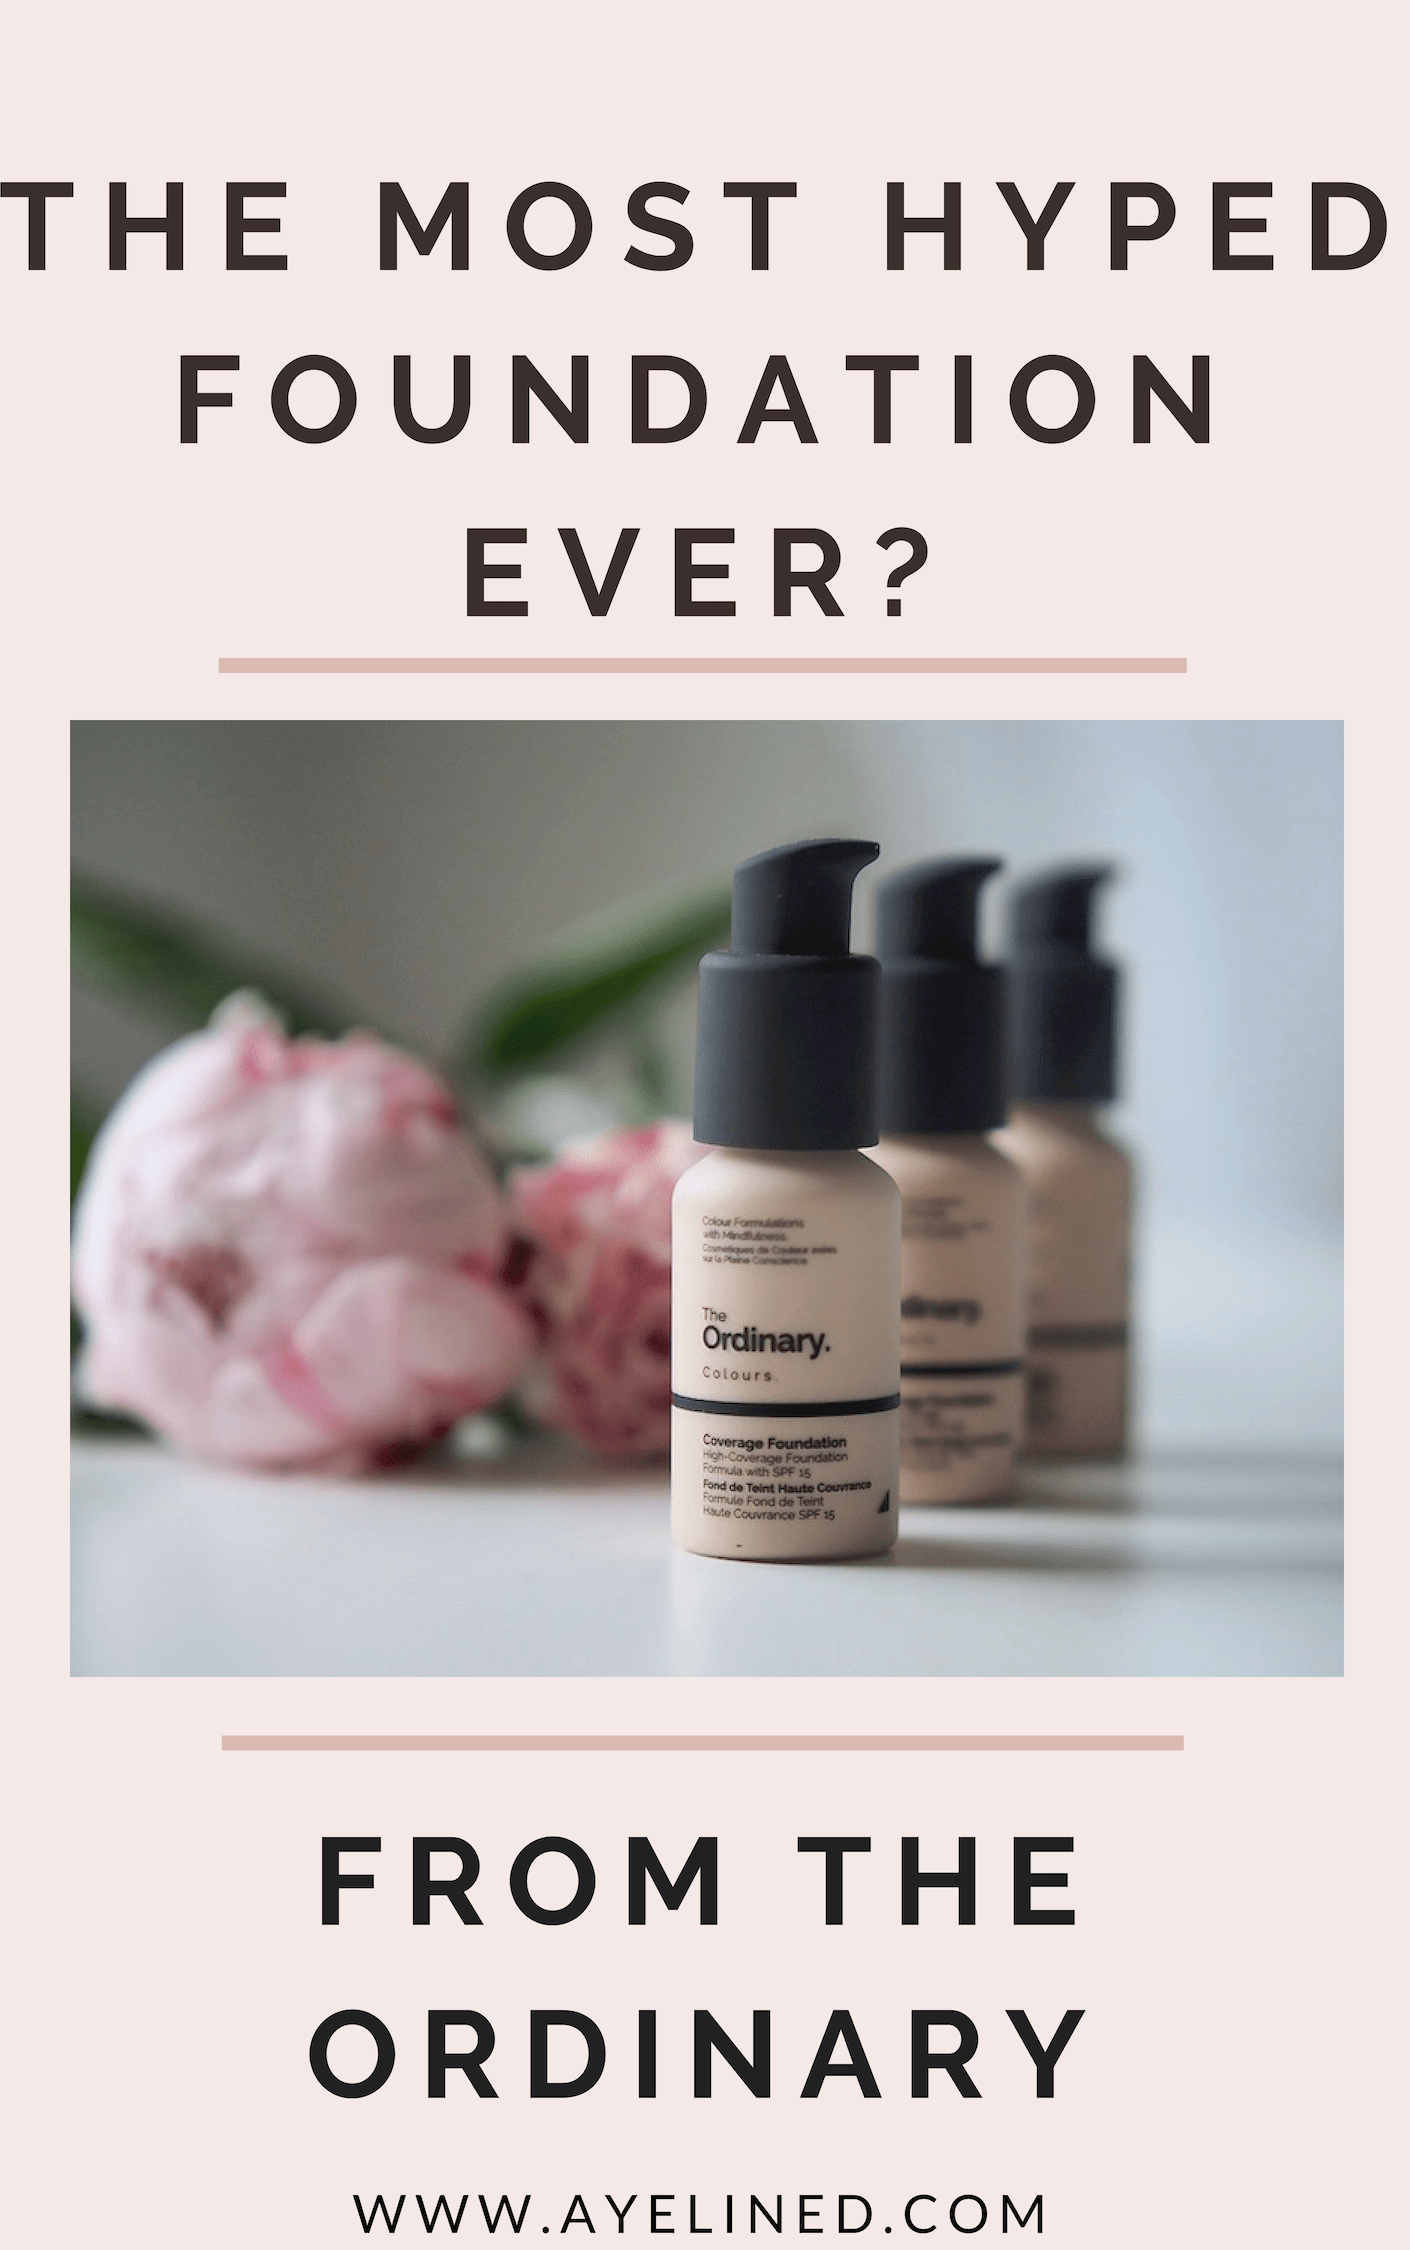 The Most Hyped Foundation Ever The ordinary foundation